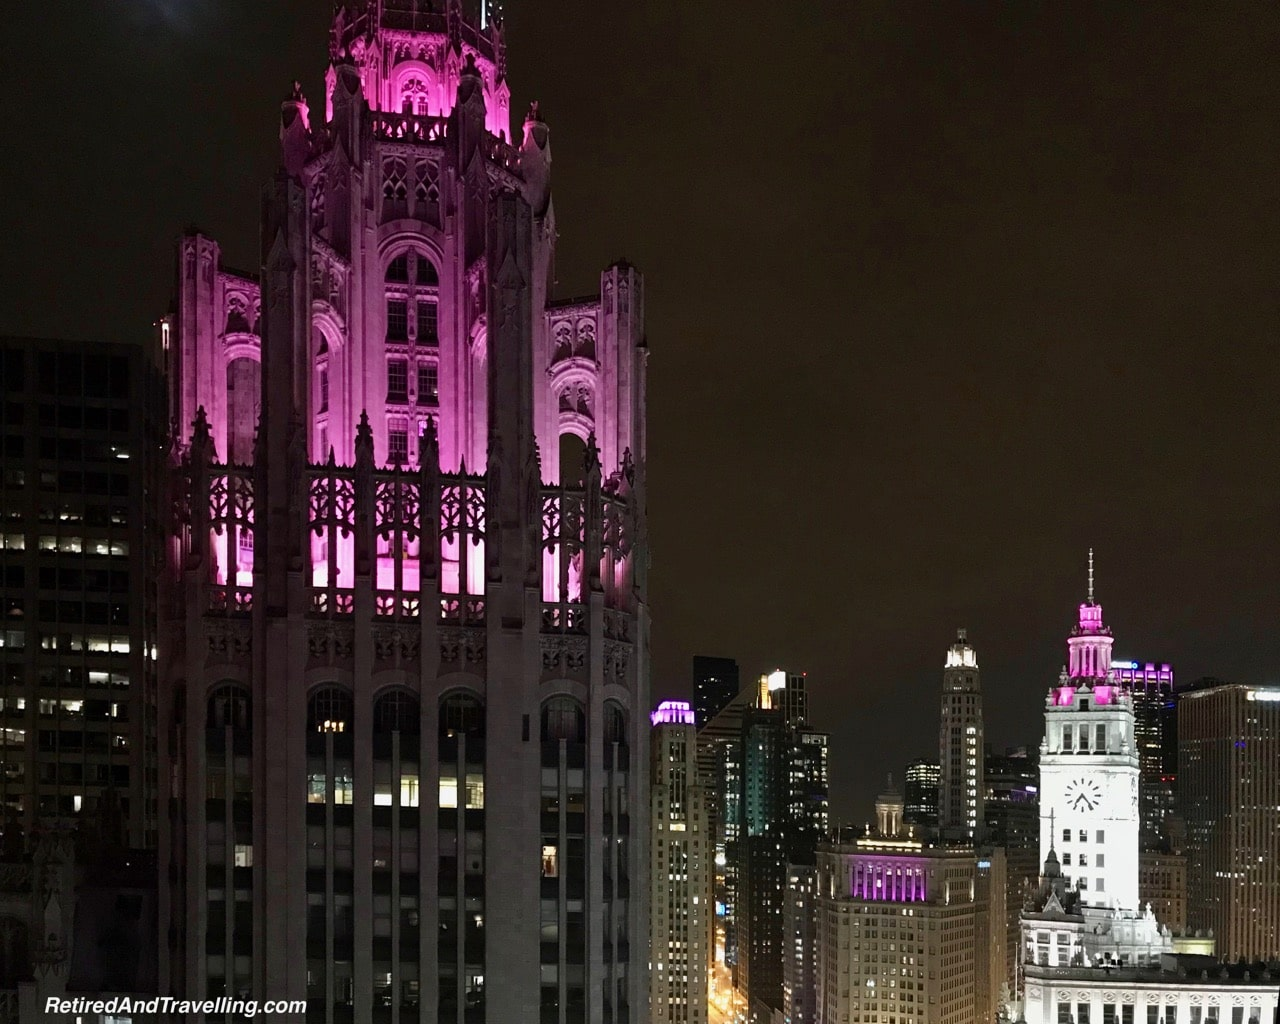 Chicago Tribune and Wrigley Building - Eclectic Chicago Architecture.jpg